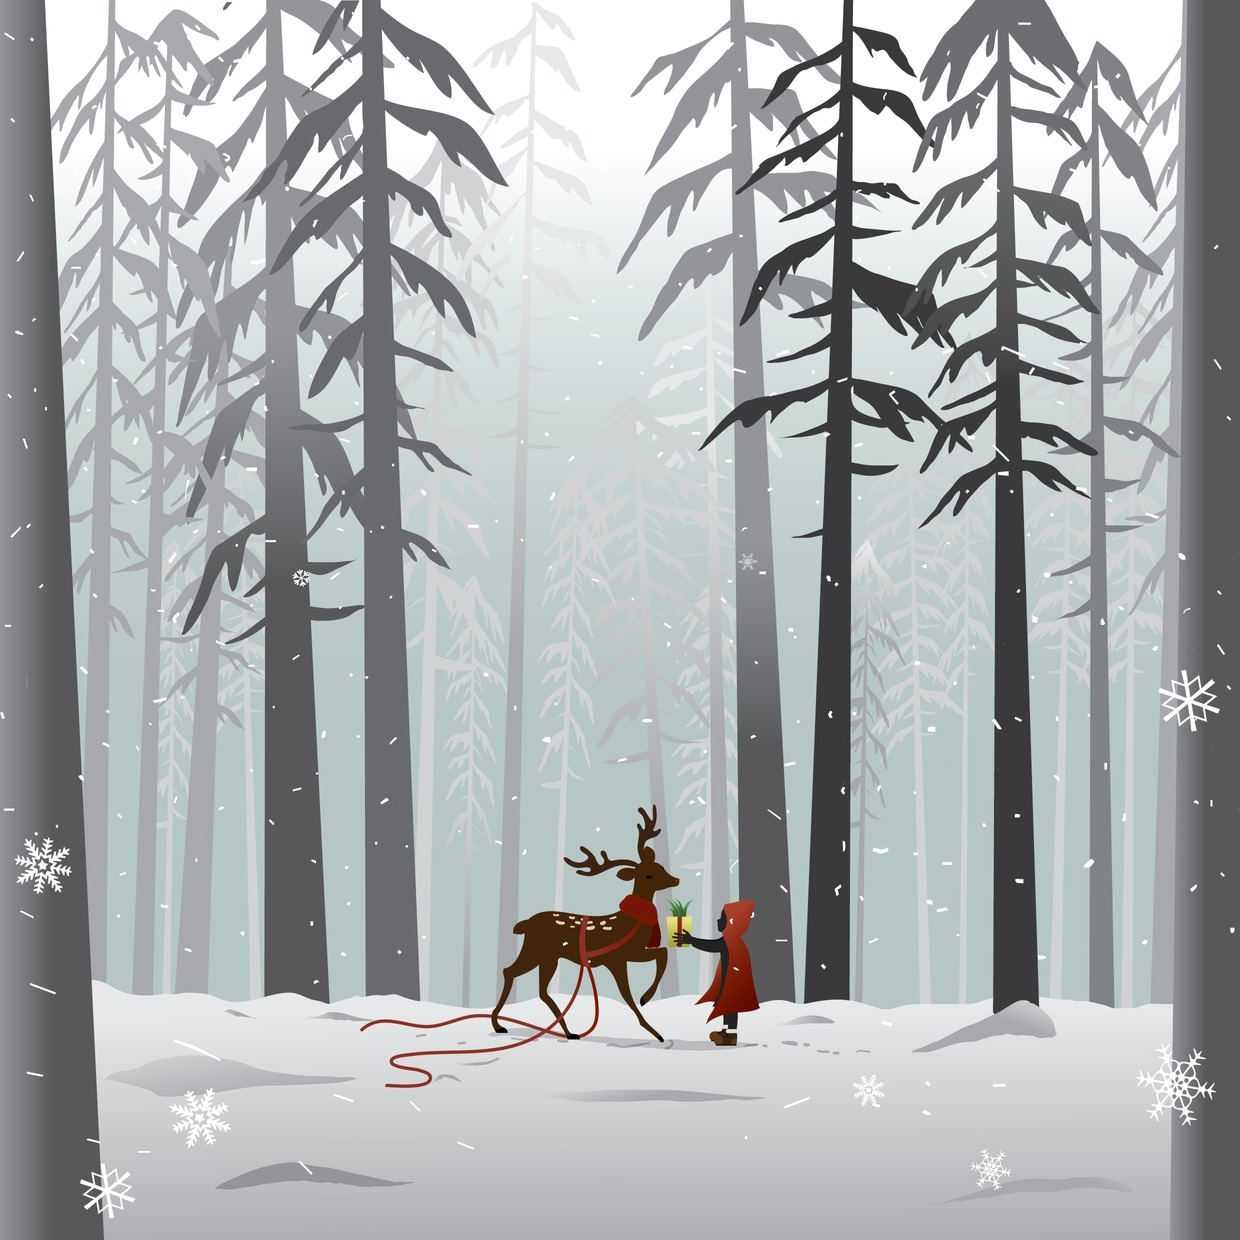 Vector Illustration : Reindeer in the forest